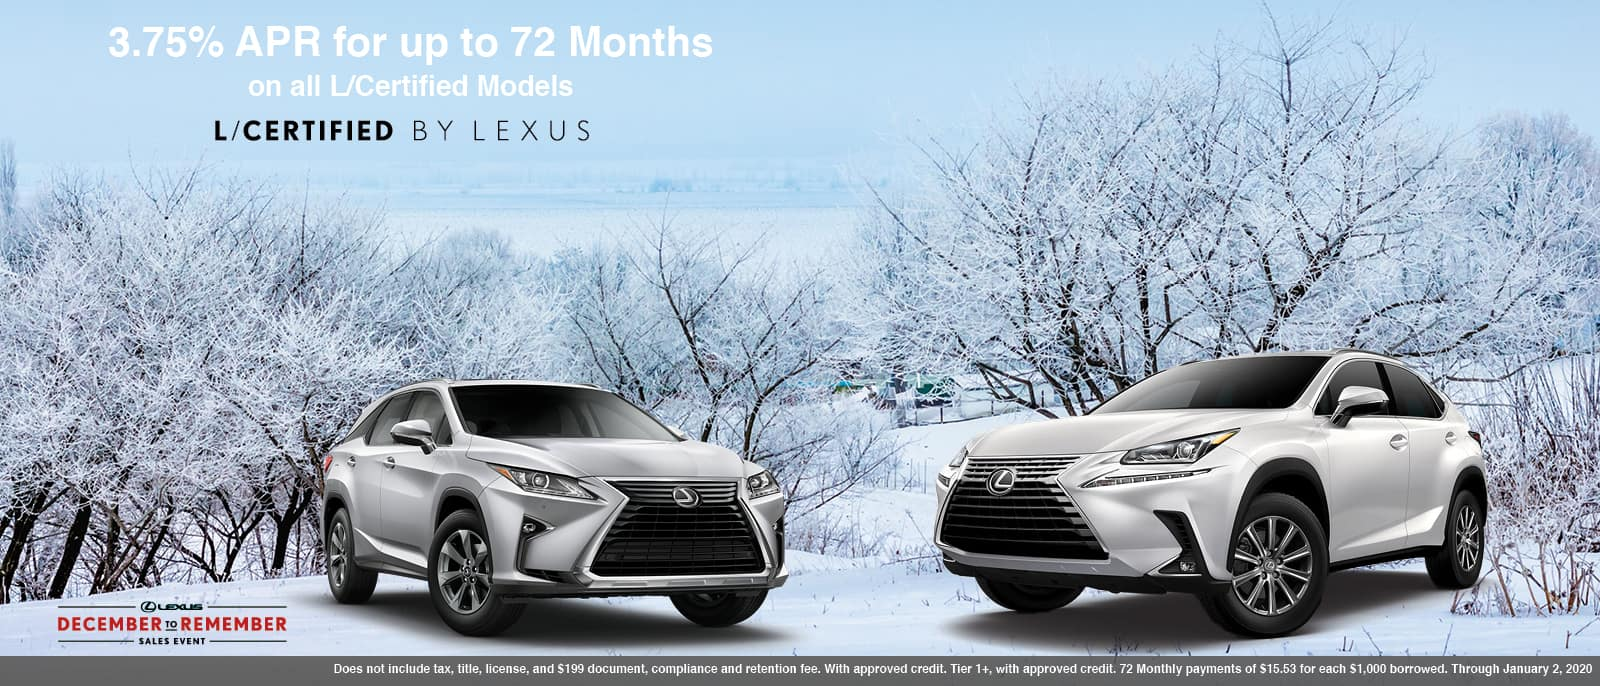 Certified Lexus Models